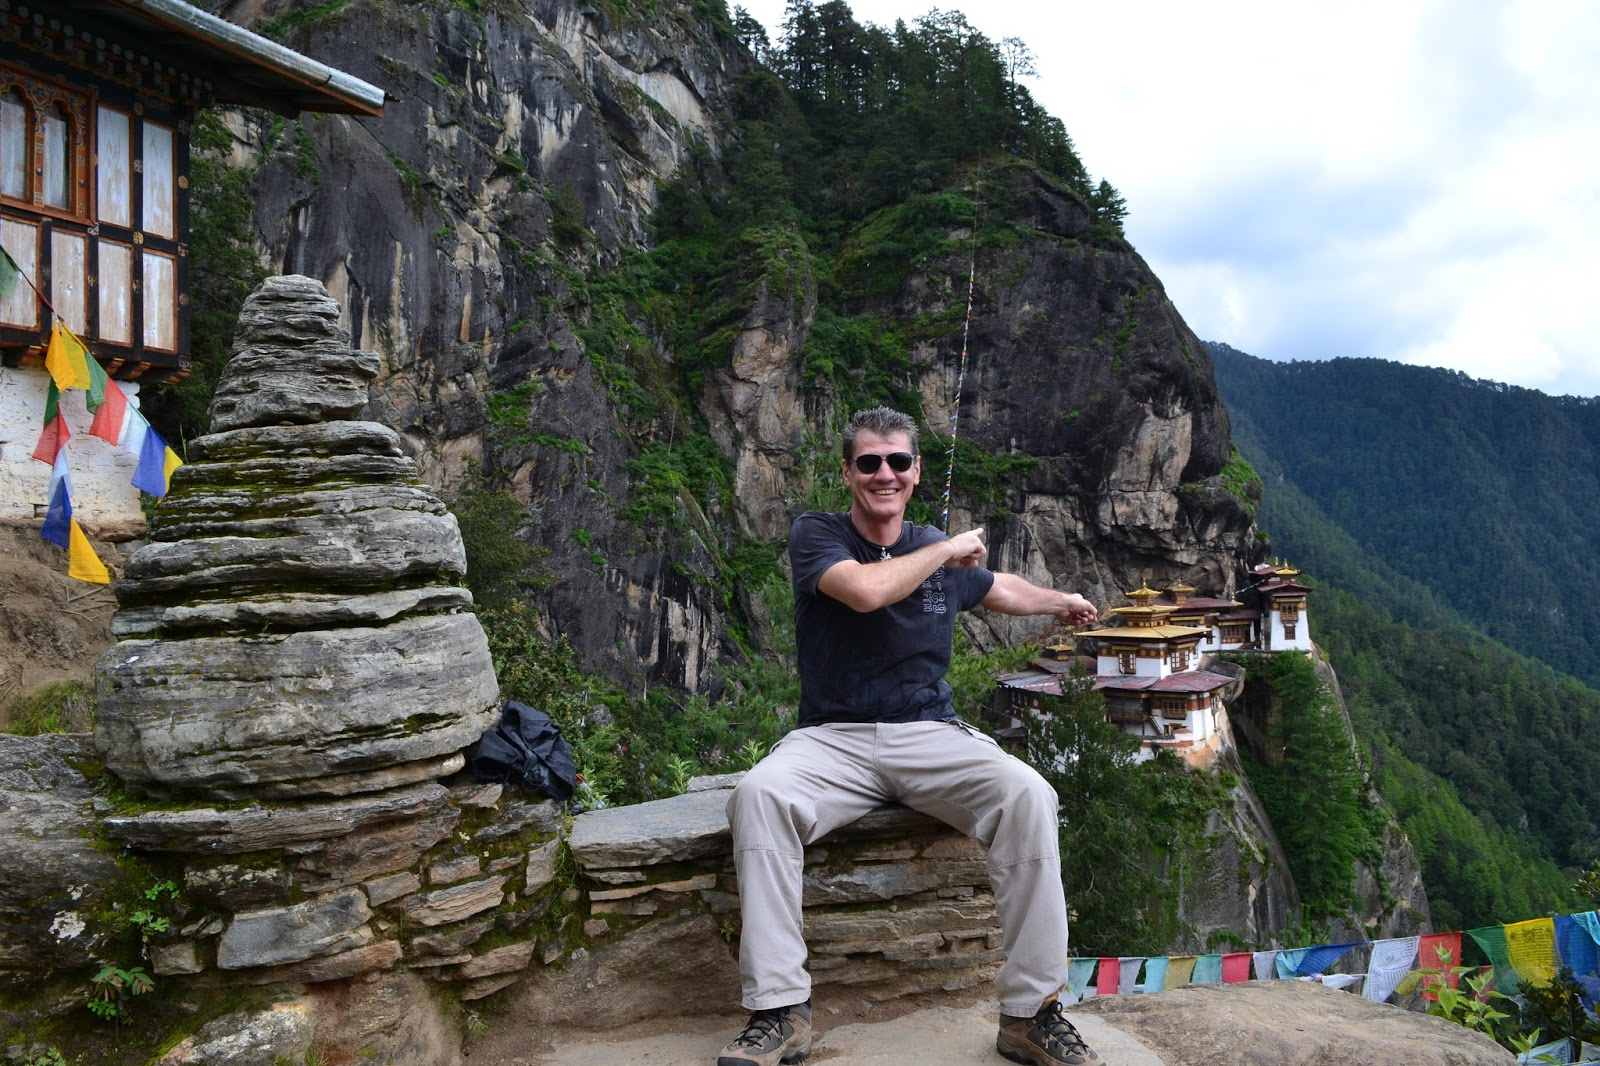 The Americans Will Come Tiger S Nest Taktsang Monastery